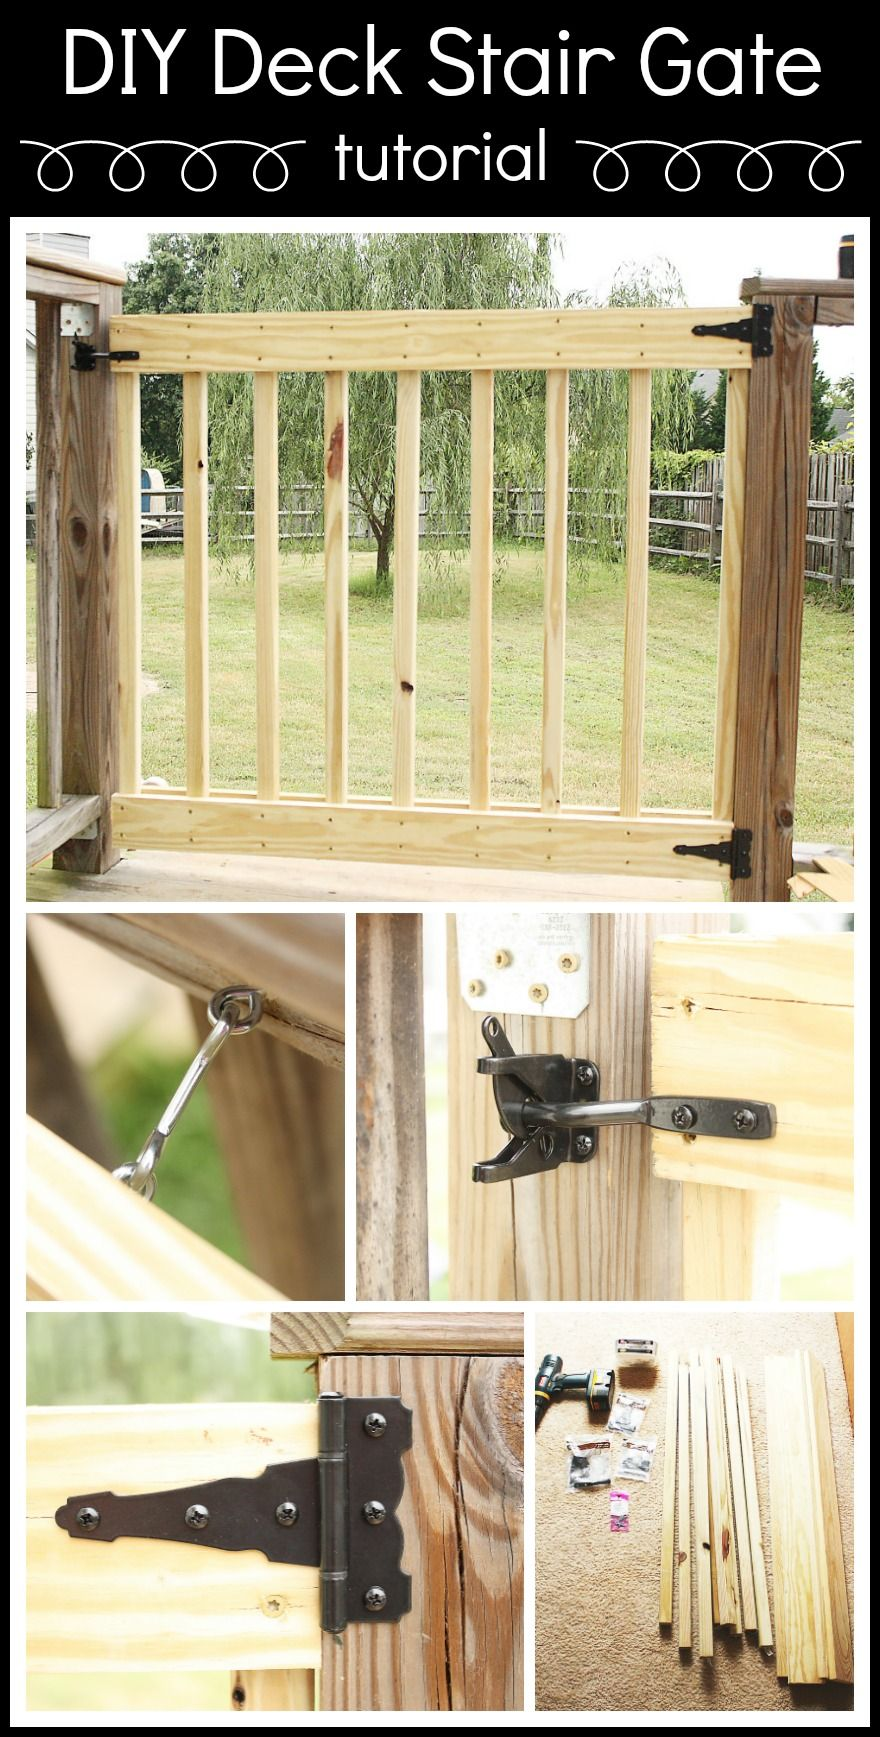 How To Build Your Own Deck Stair Gate Diy Deck Stair Gate